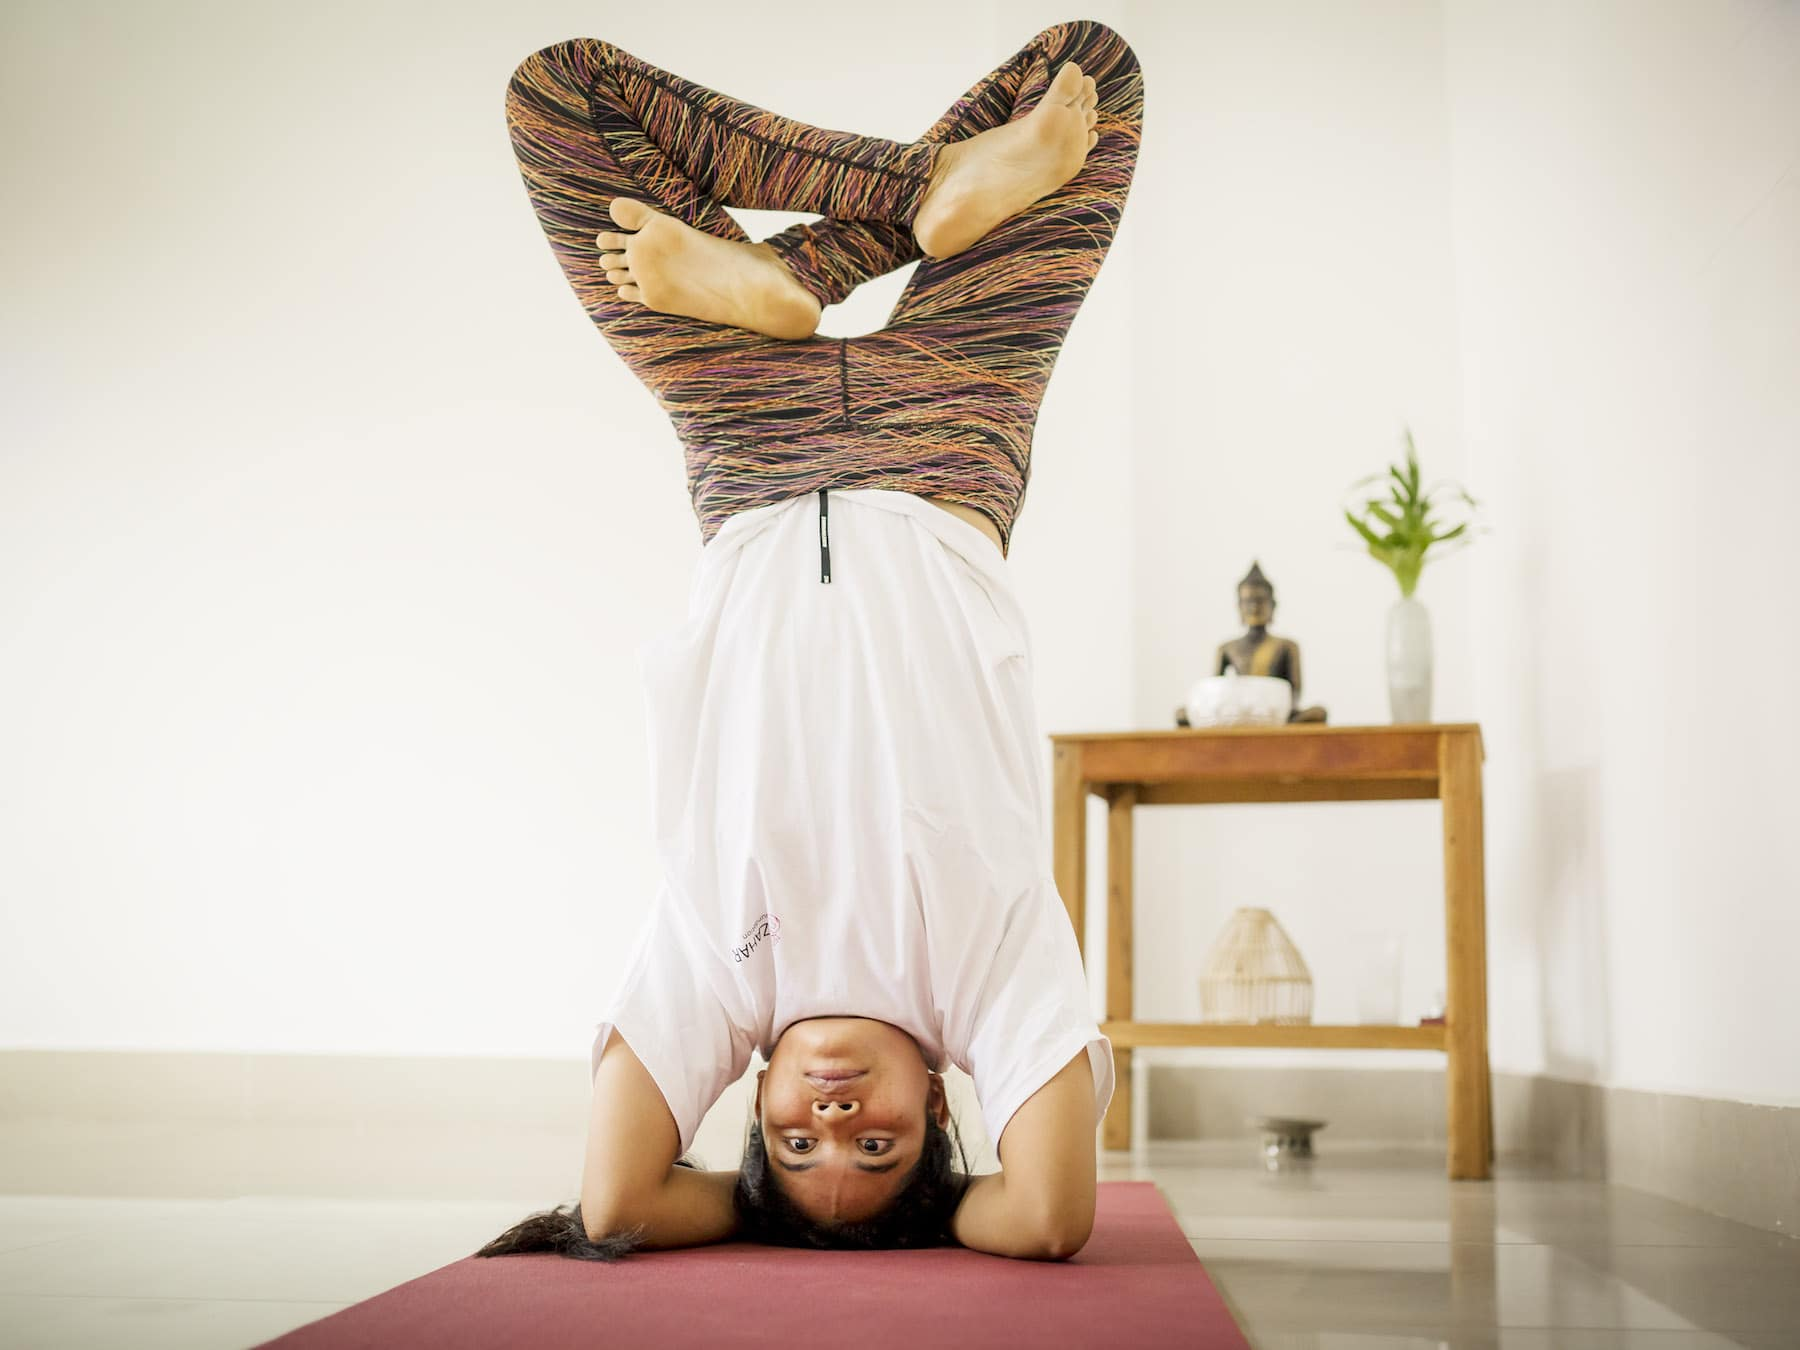 Sreyline learnt yoga through the Azahar Foundation, who now employs her